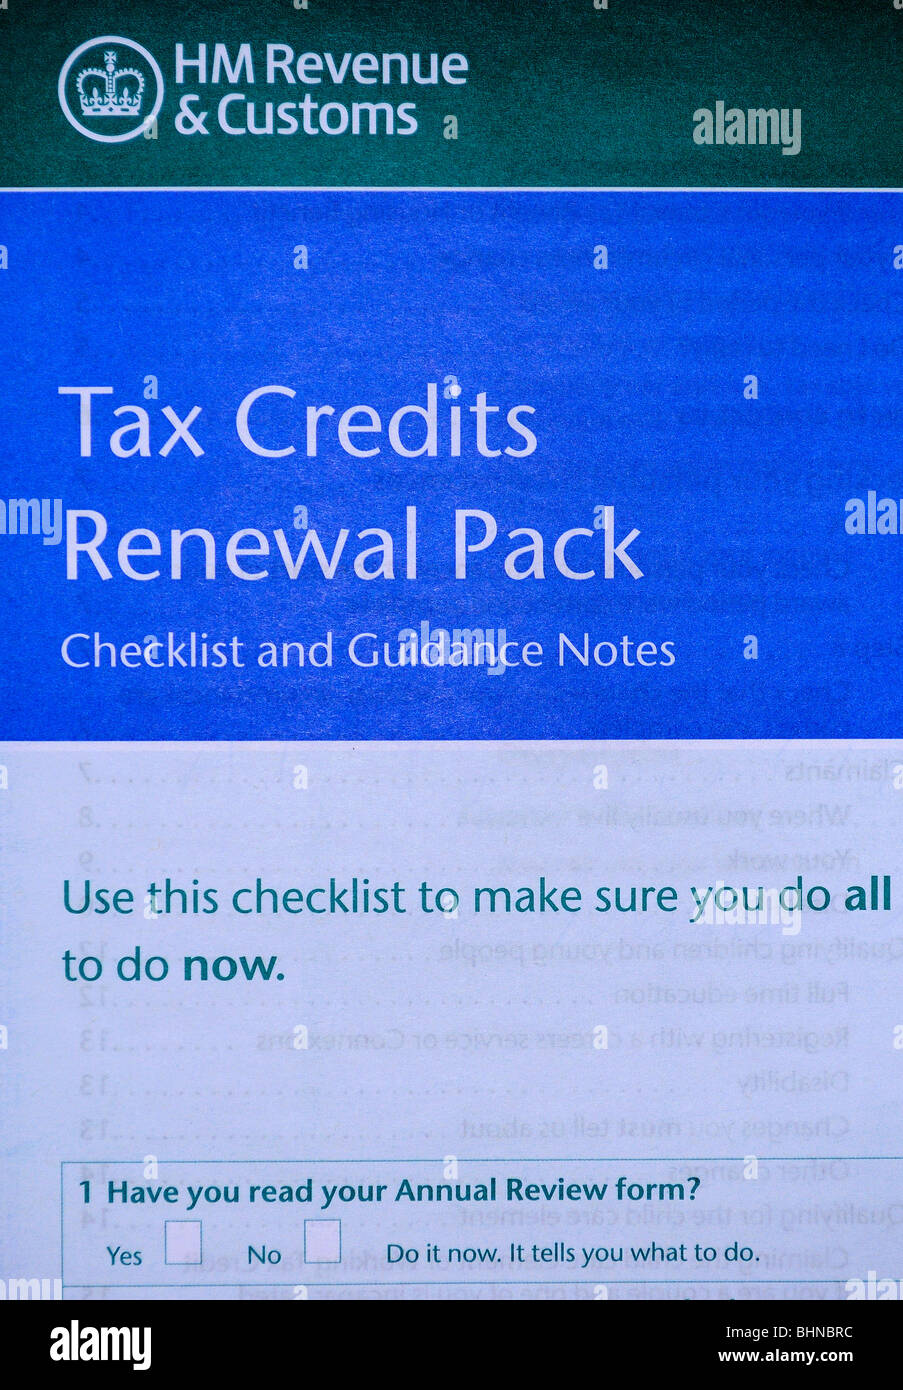 a tax credits renewal pack - Stock Image